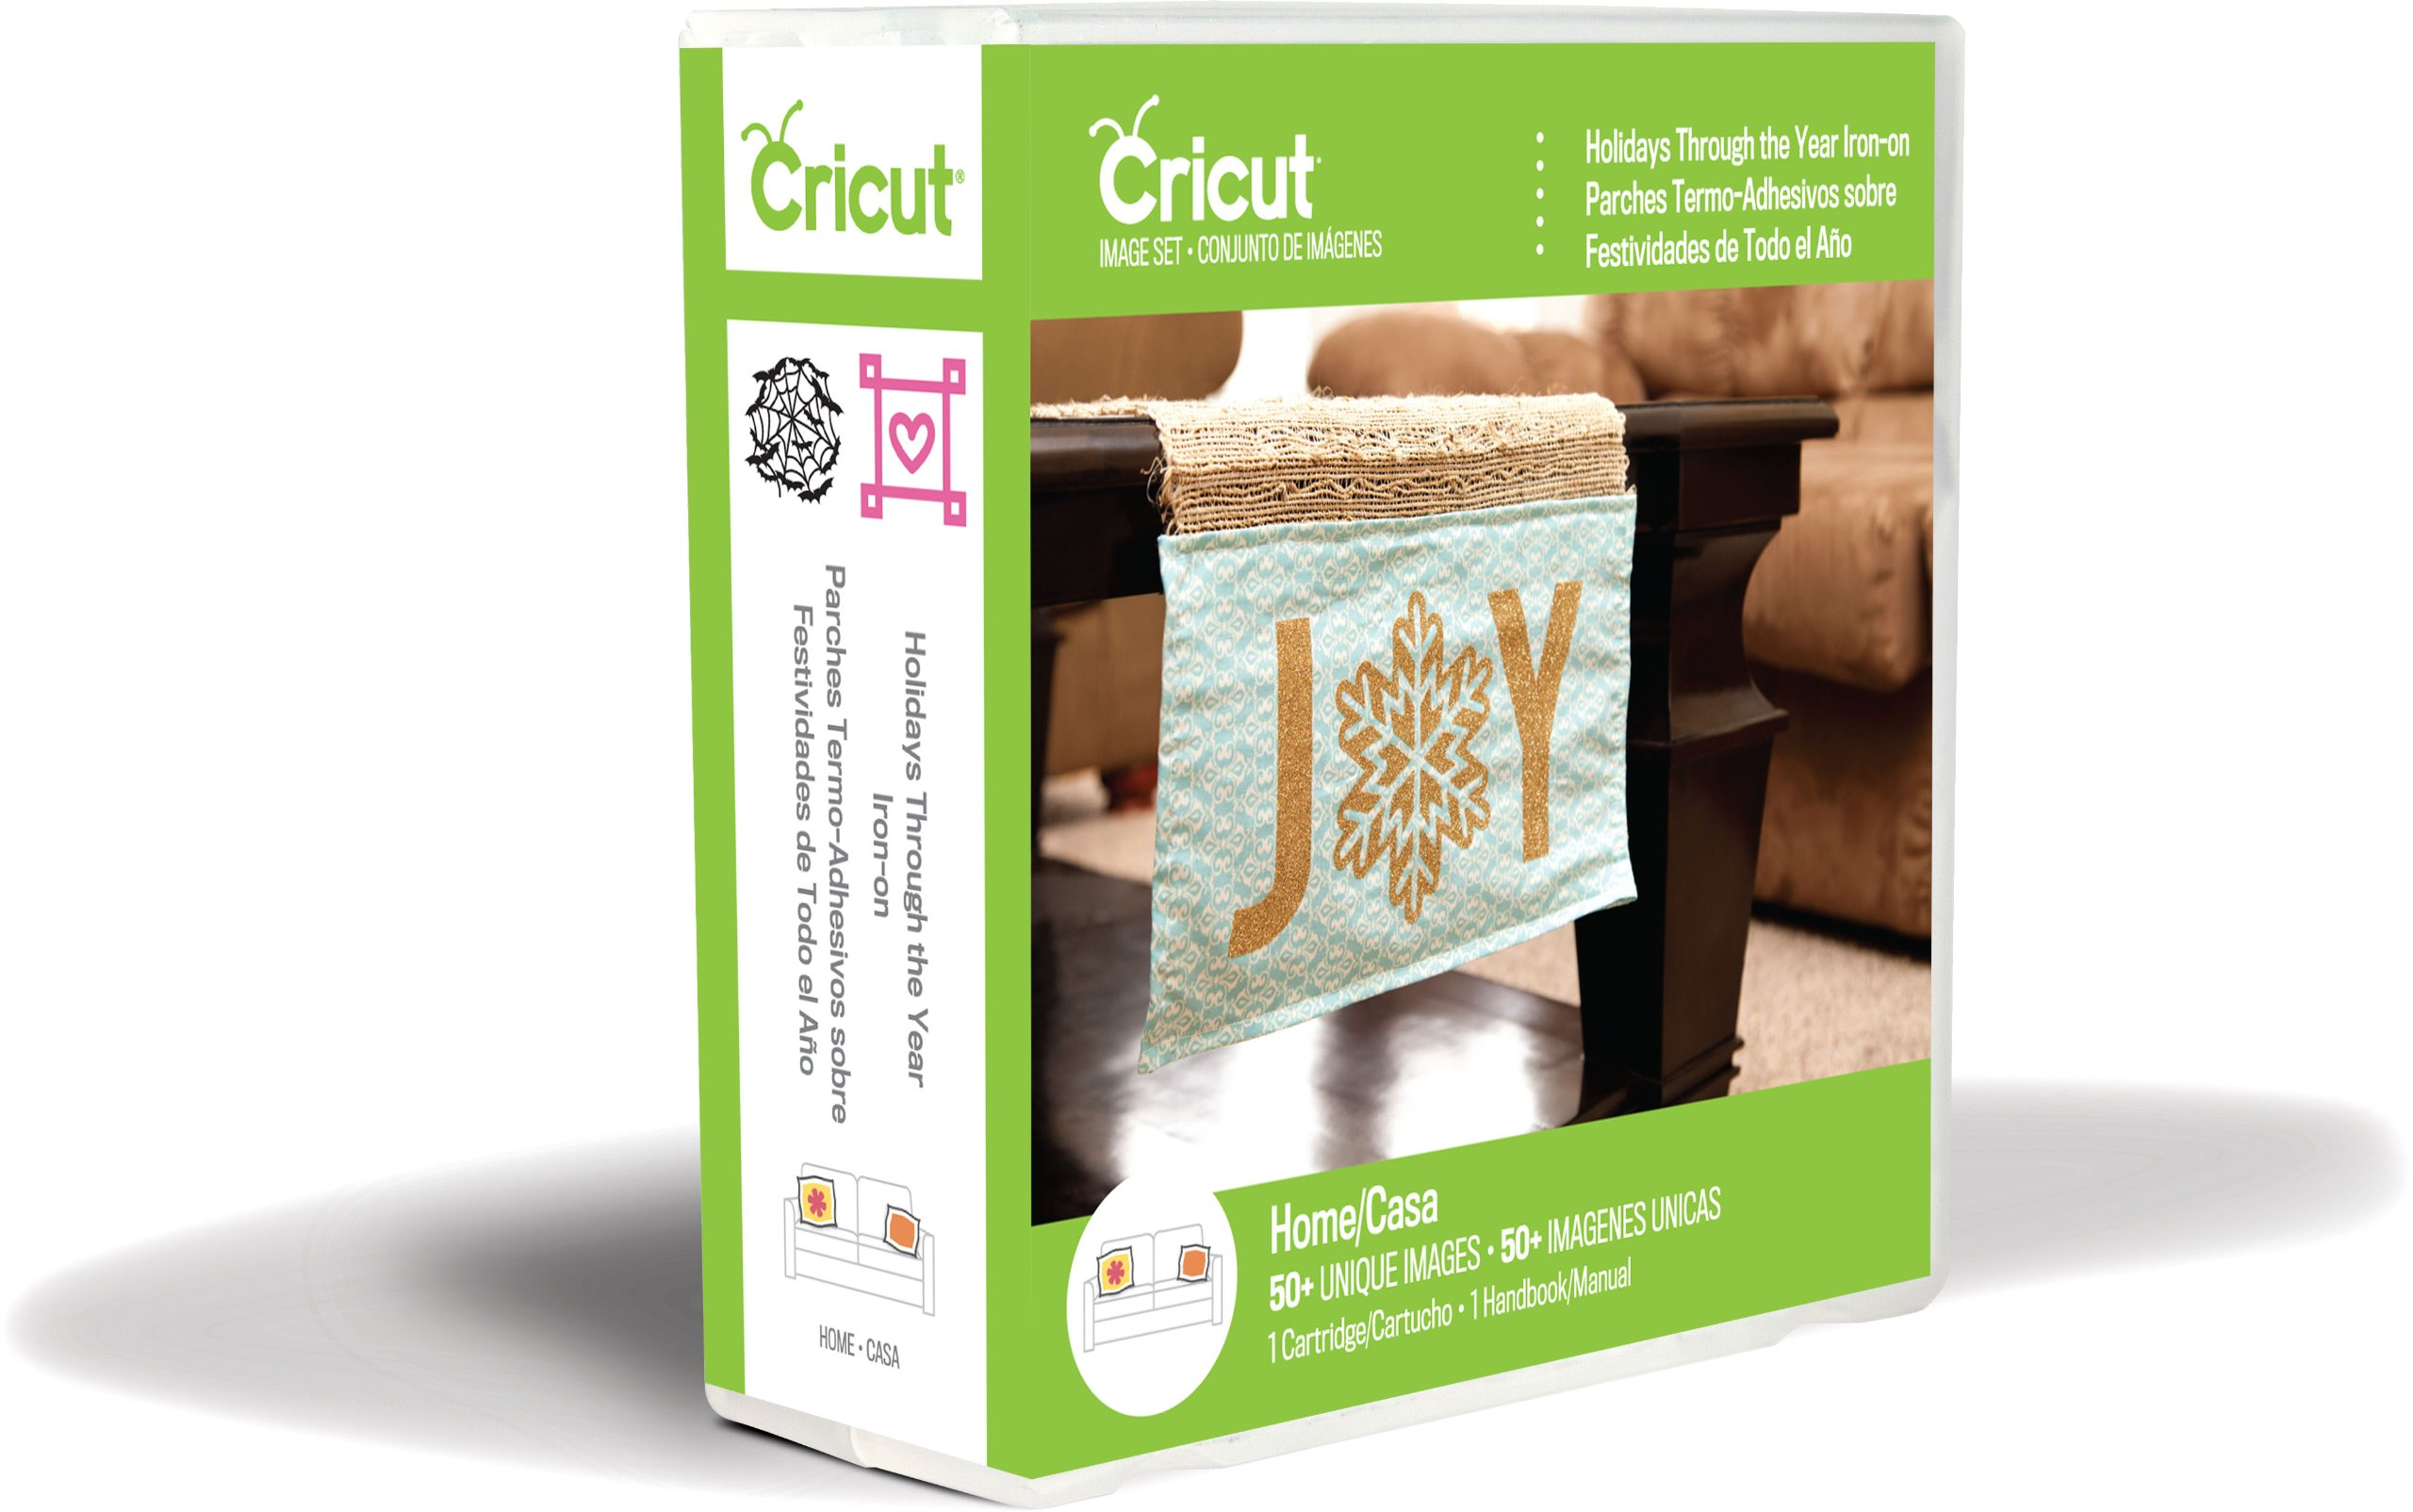 Cricut Holidays Through The Year Iron-on Cartridge